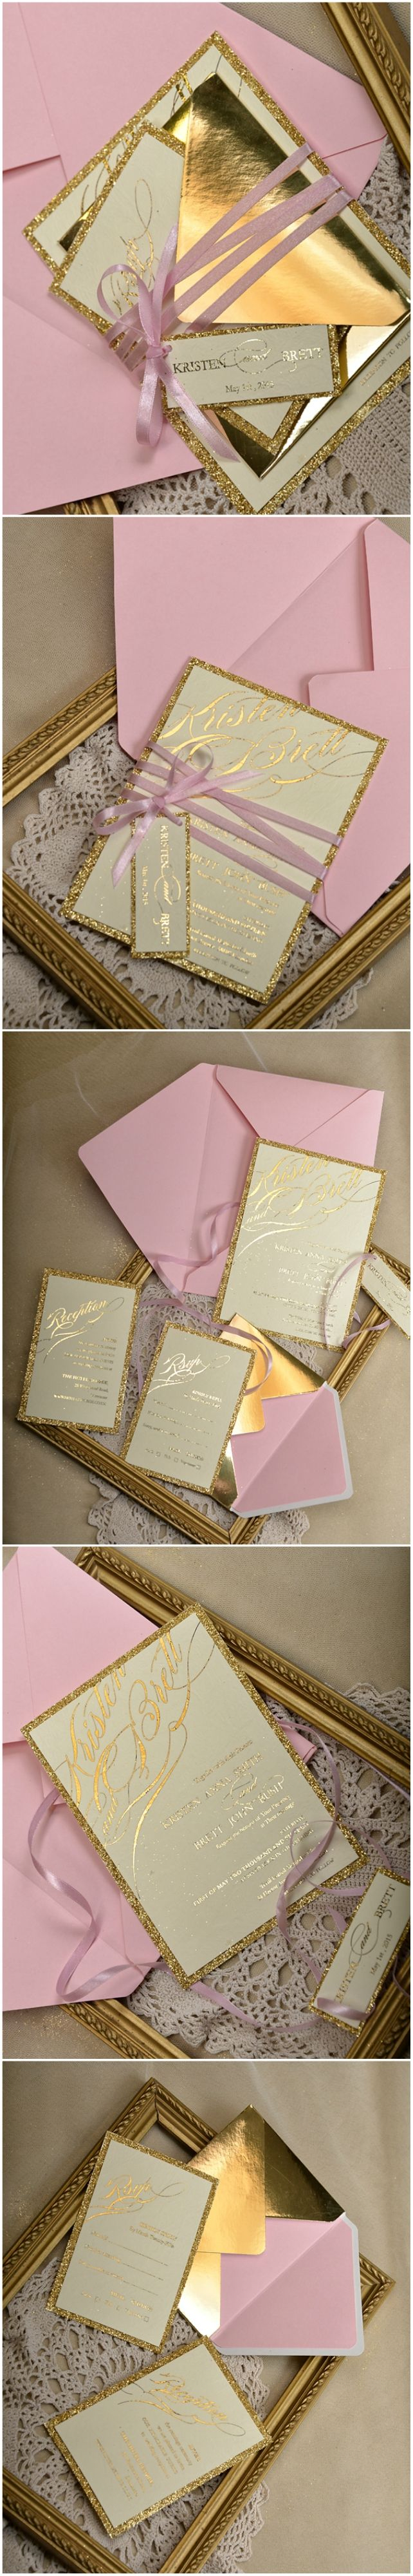 Pink & Gold Glitter Wedding Invitations #weddingideas #gold #pink #glitter #weddinginvitations #elegant #shiny #goldfoil